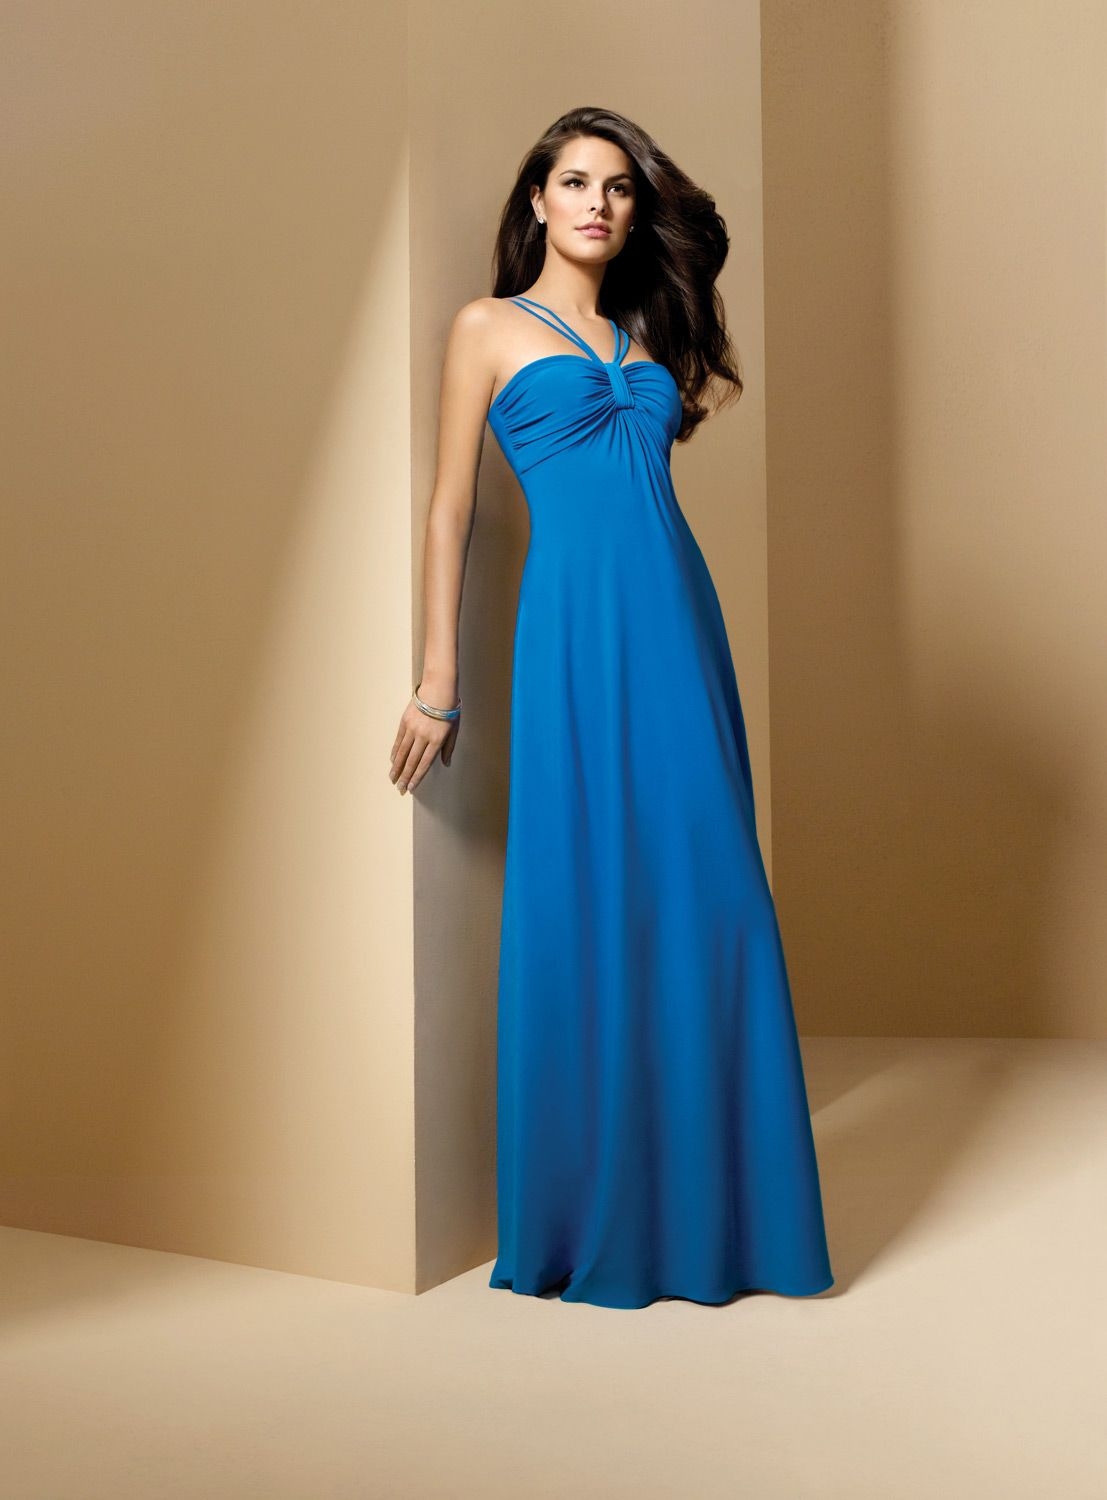 Cheap alfred angelo bridesmaid dresses top 50 cheap bridesmaid cheap alfred angelo bridesmaid dresses top 50 cheap bridesmaid dresses pinterest dresses alfred angelo and bridesmaid dresses ombrellifo Choice Image